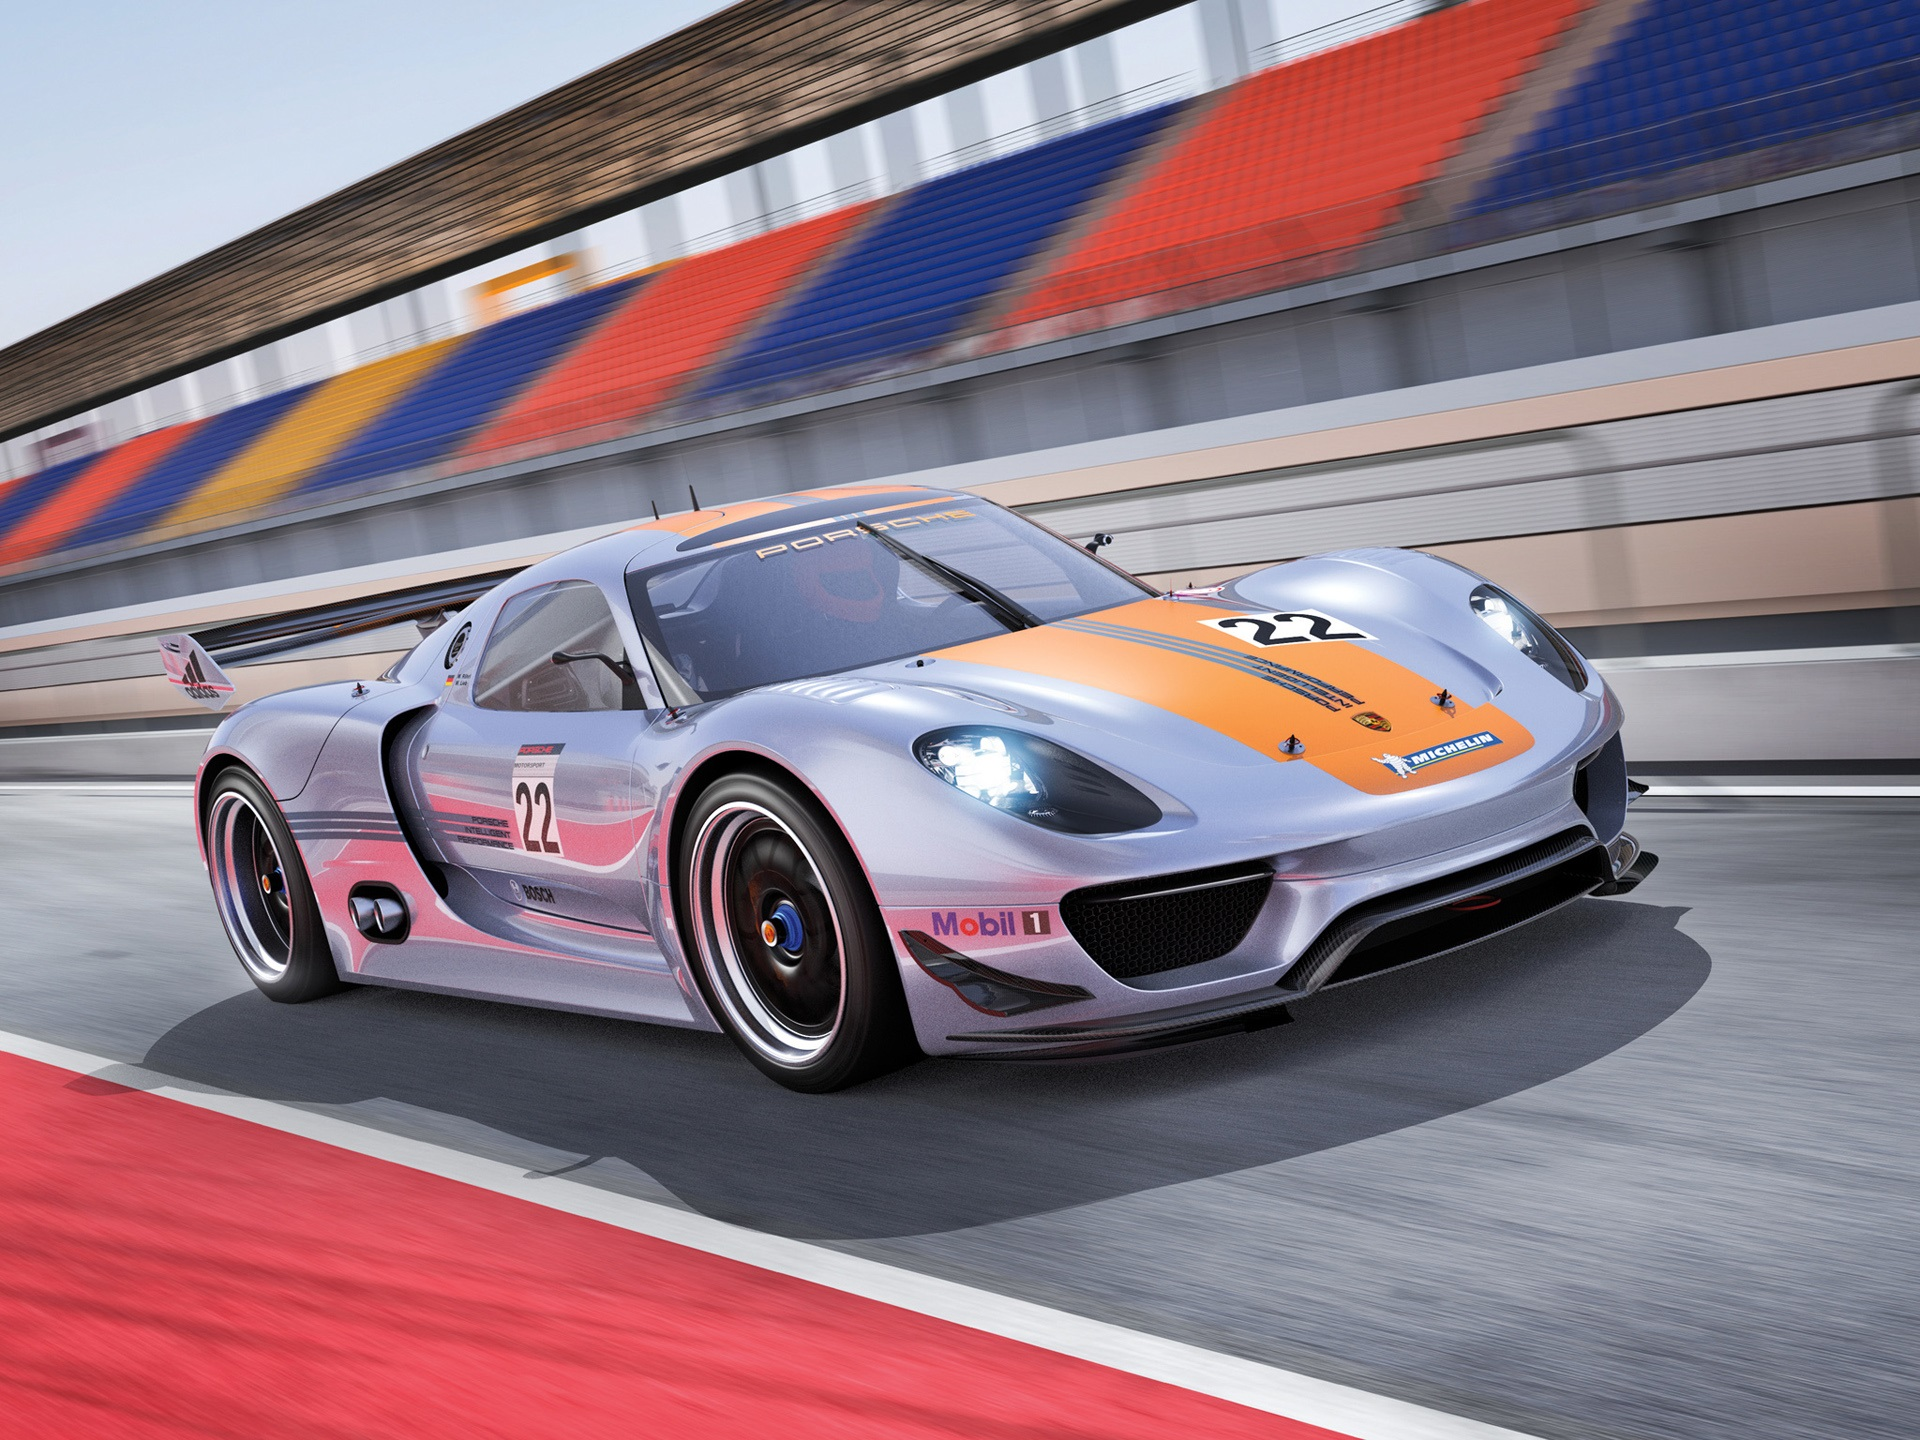 Wallpaper Porsche 918 RSR Concept Supercar Side View 1920x1440 HD